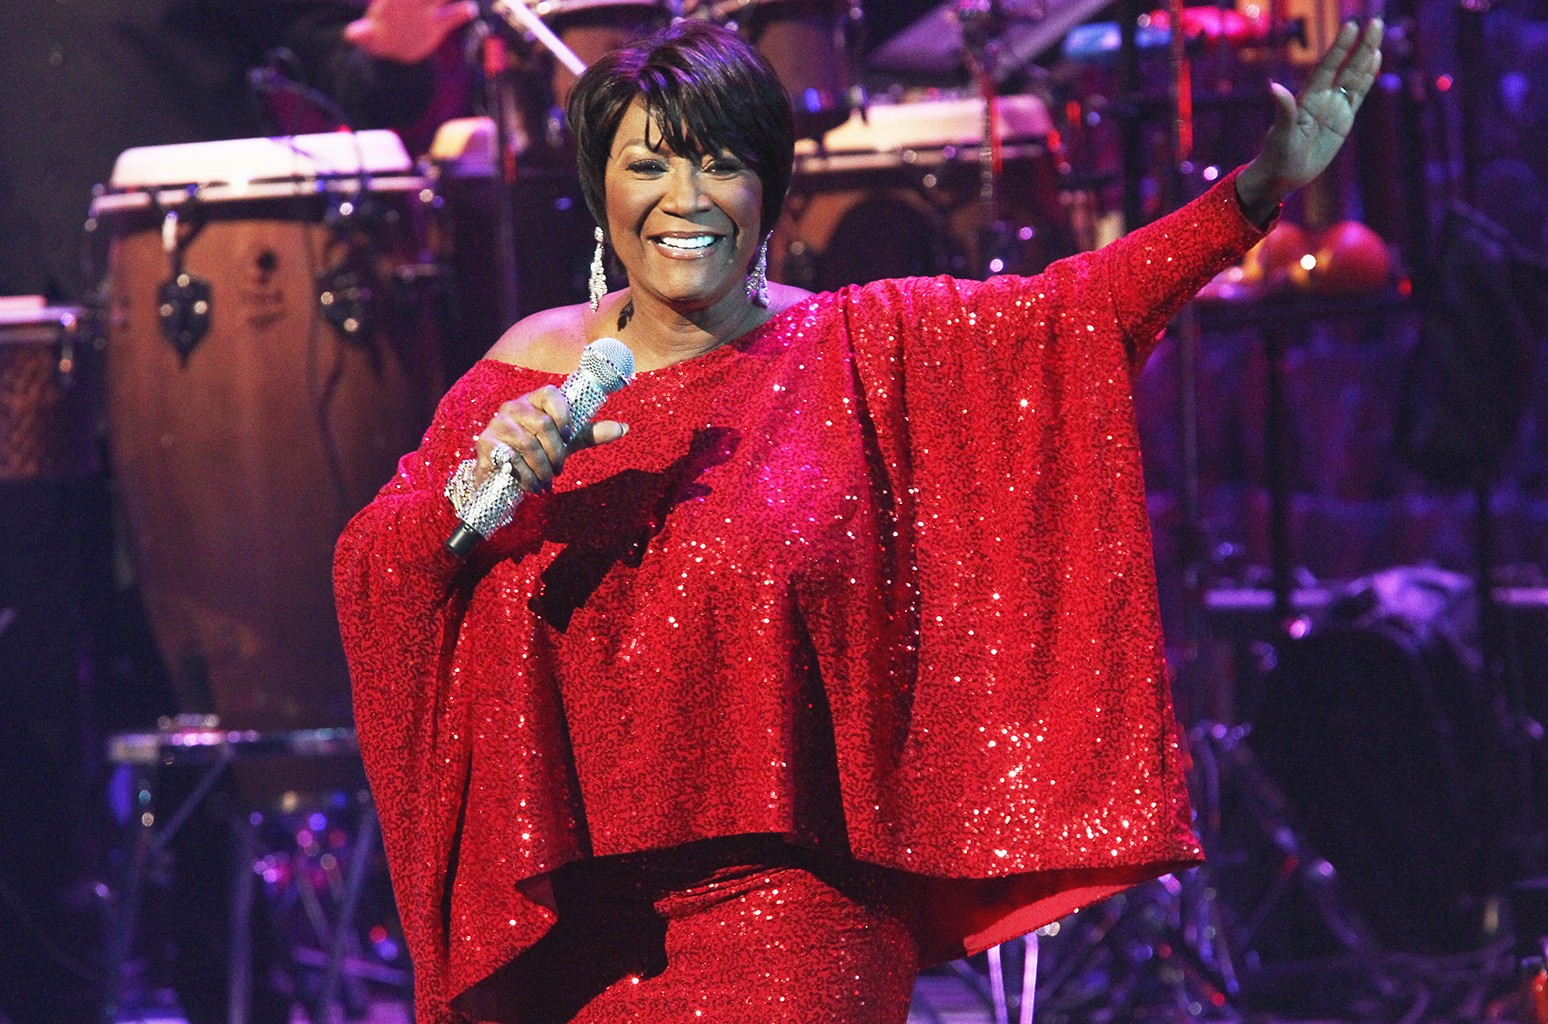 Patti LaBelle performs at the Dolby Theatre on Nov. 30, 2016 in Hollywood, Calif.